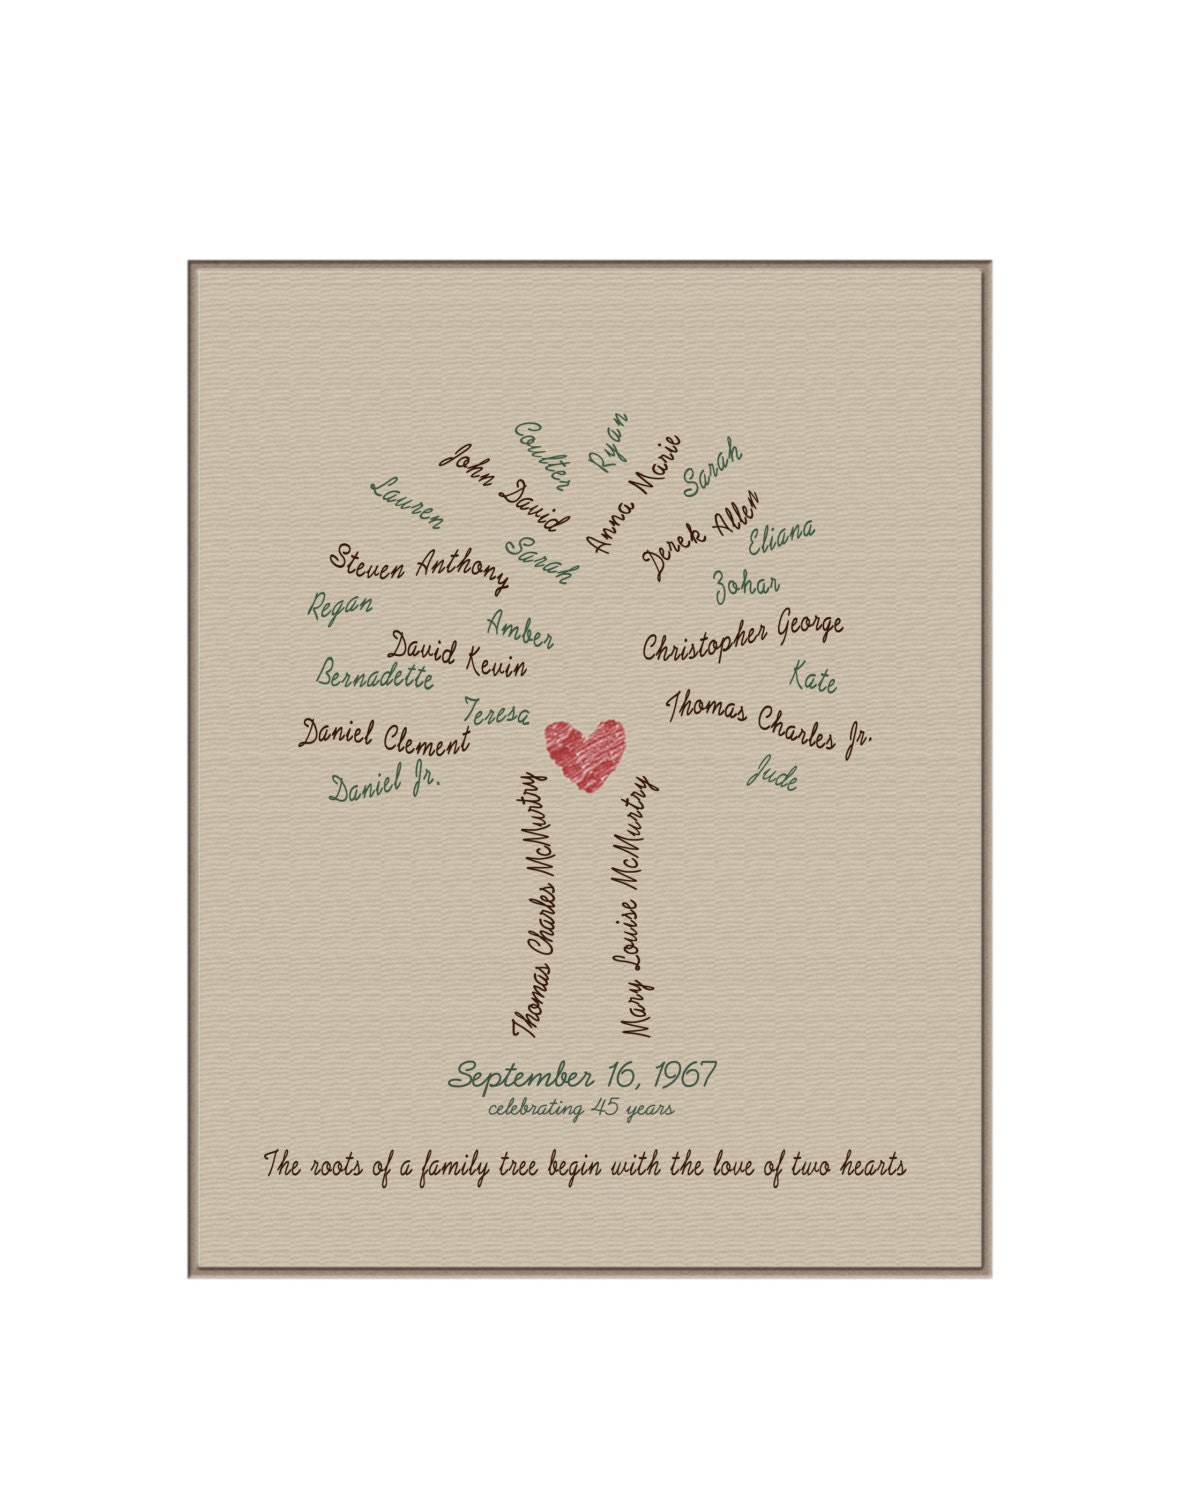 Item details for Family tree gifts personalized